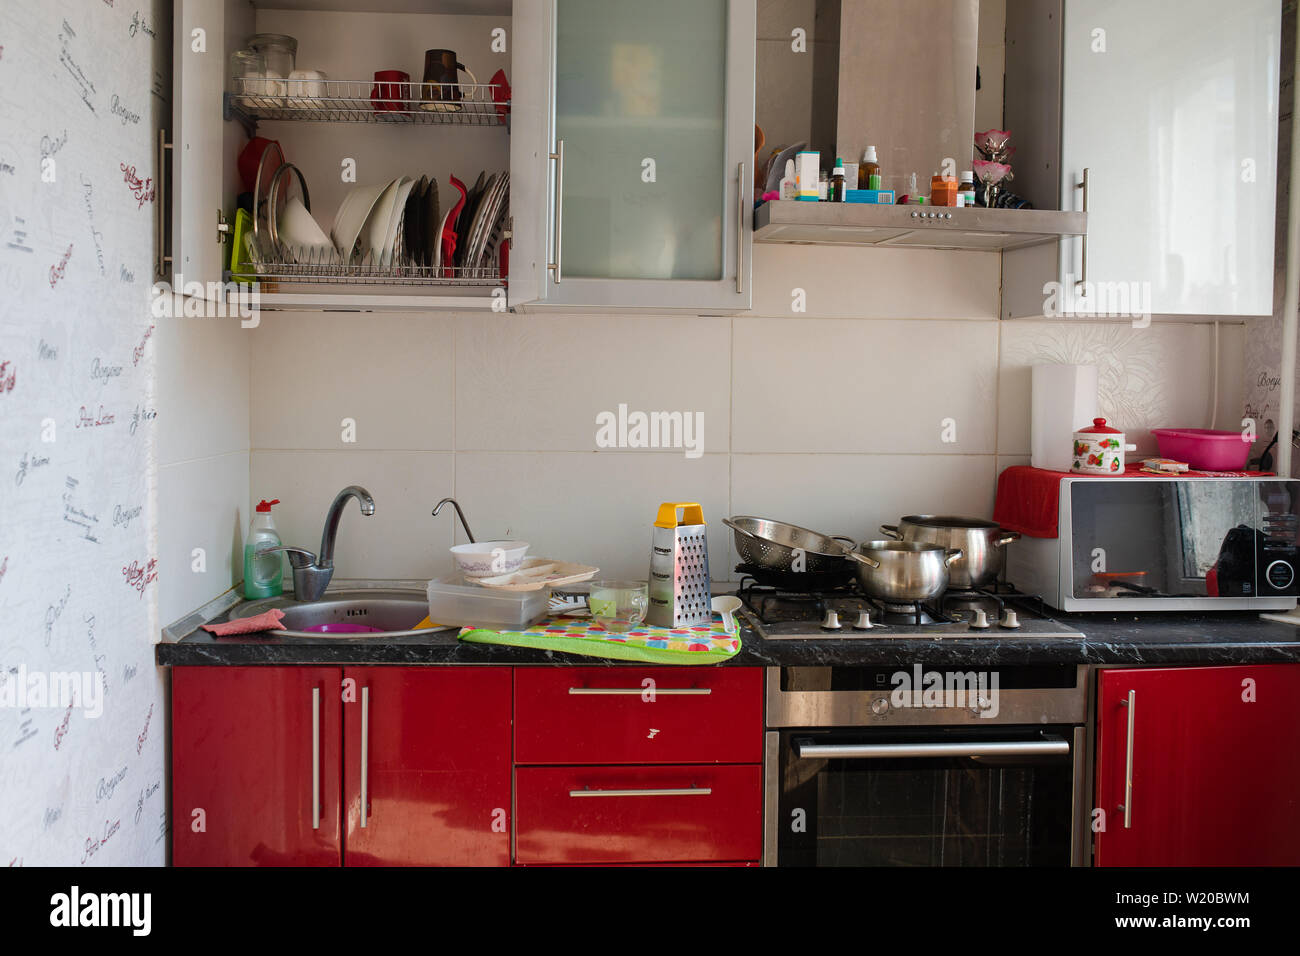 Typical Small Kitchen With Dirty Dishes And Clutter Full Shot Stock Photo Alamy